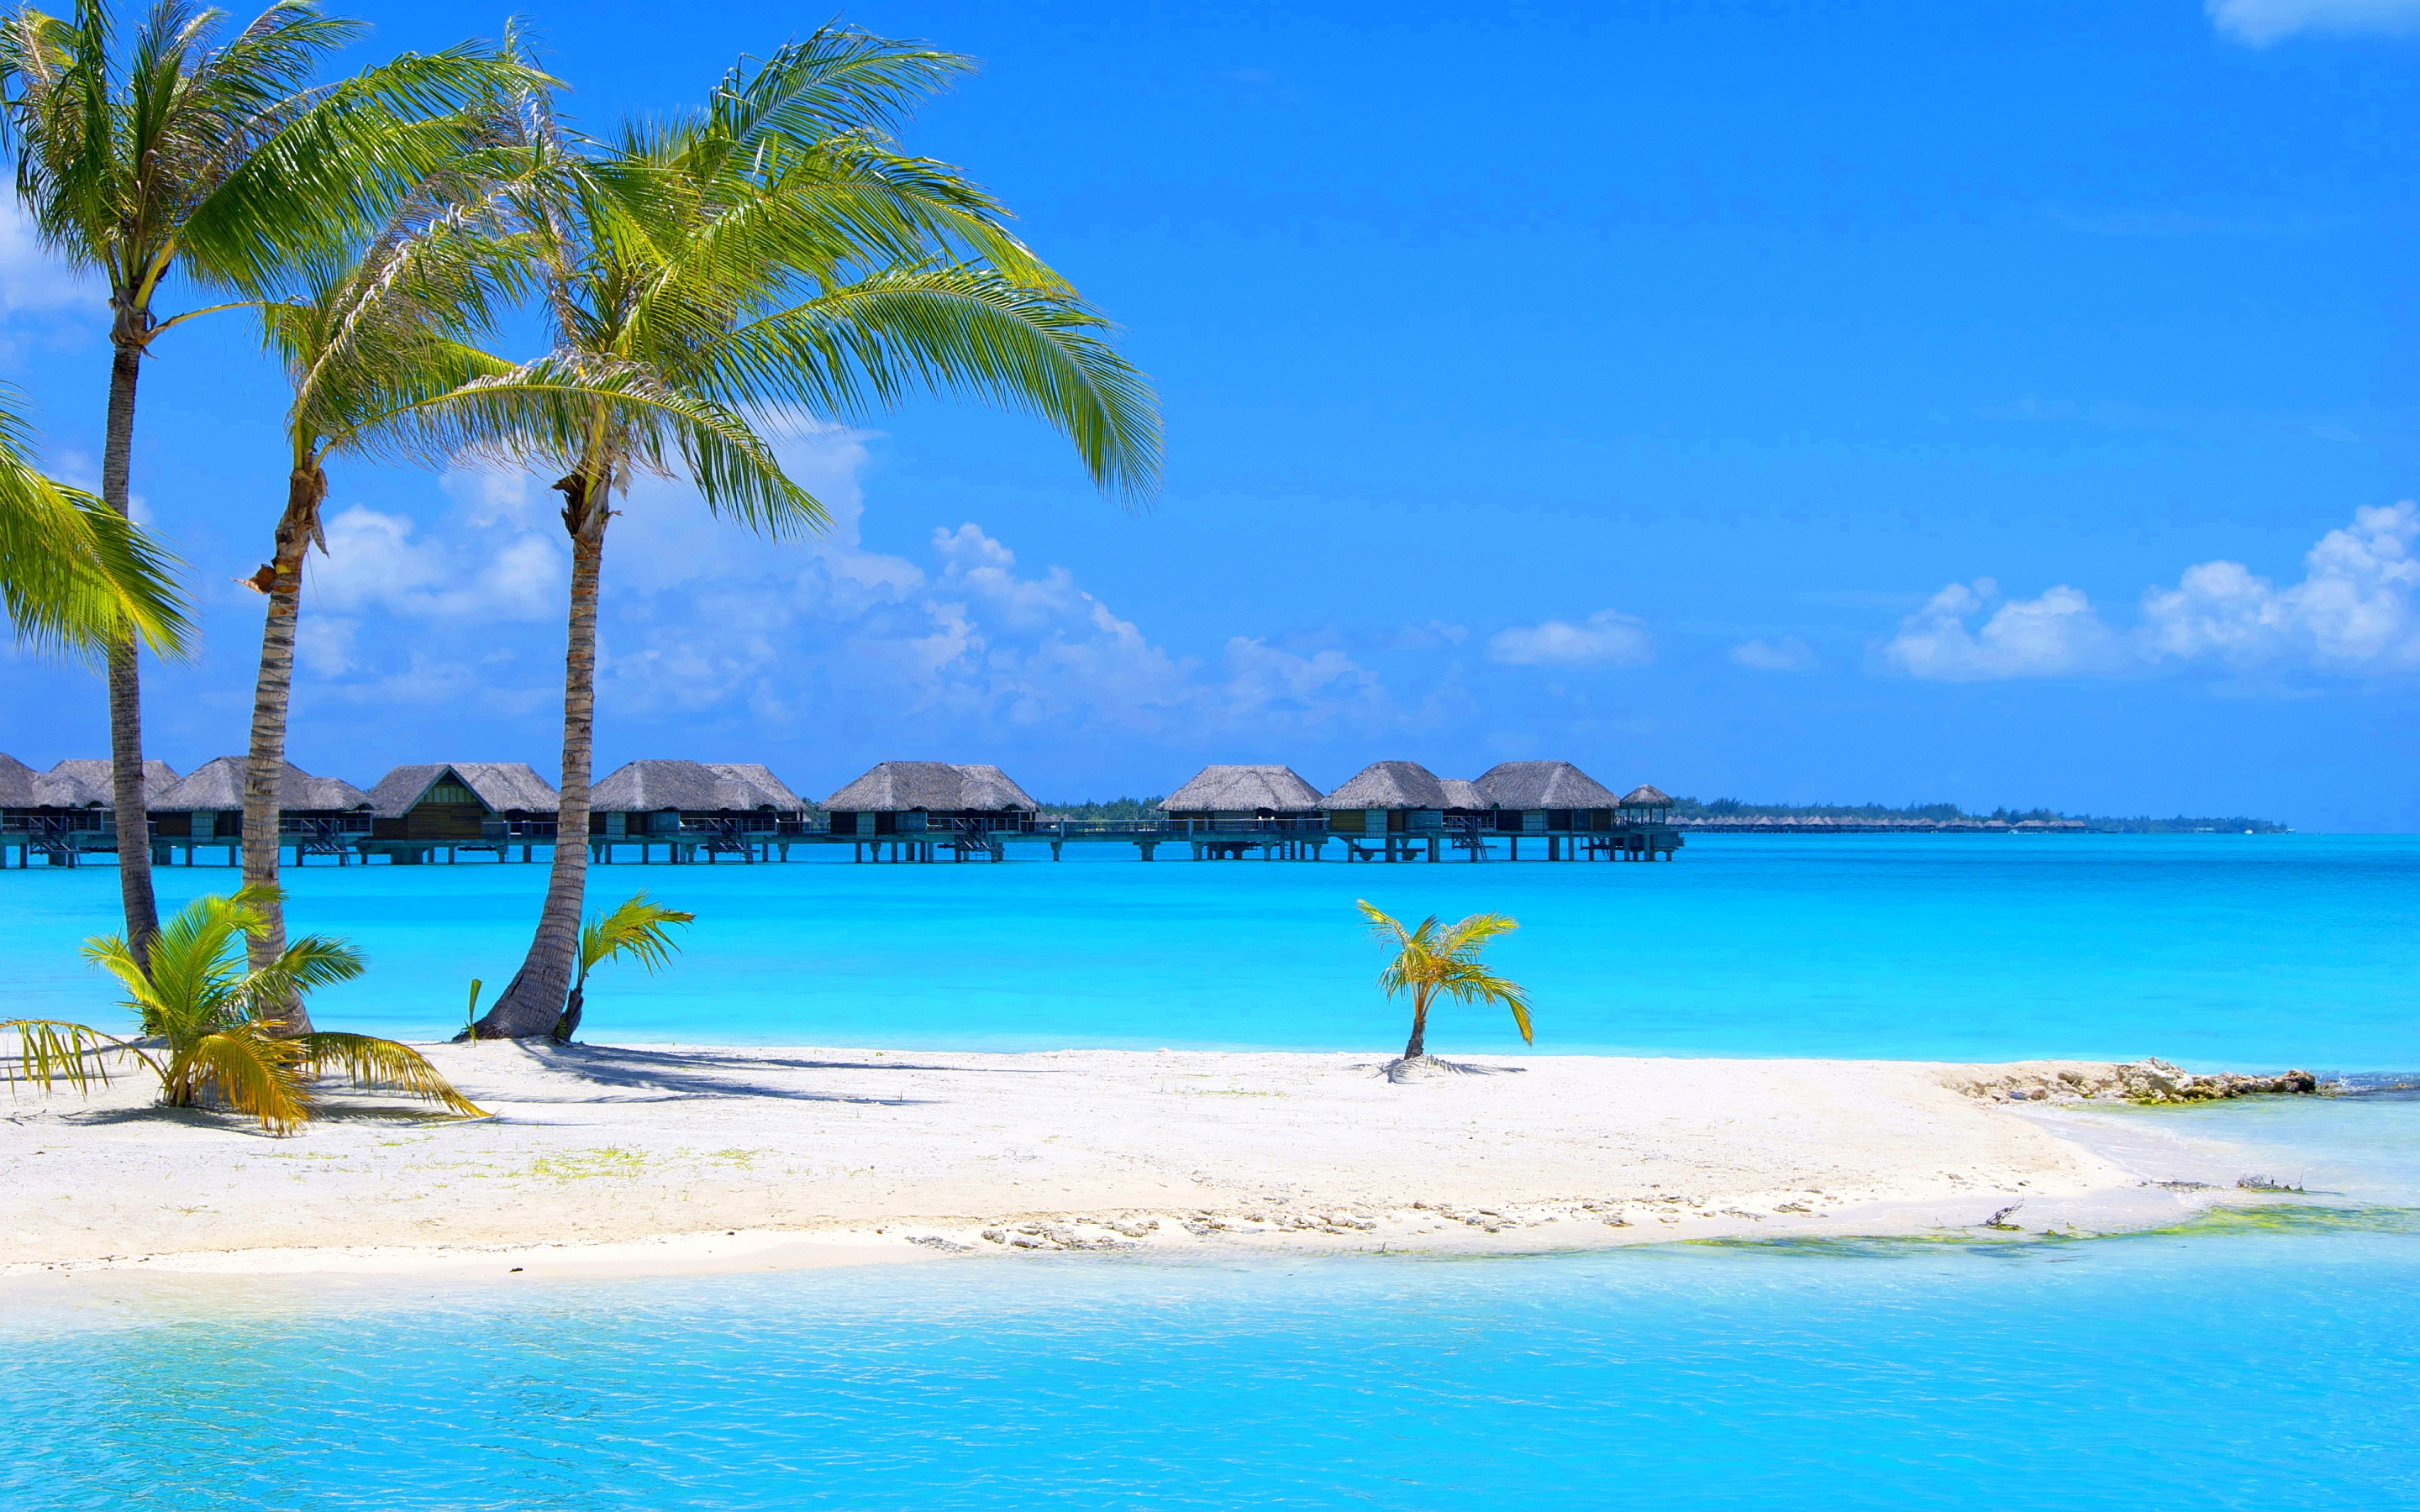 Maldives Beach Wallpapers HD 2880x1800